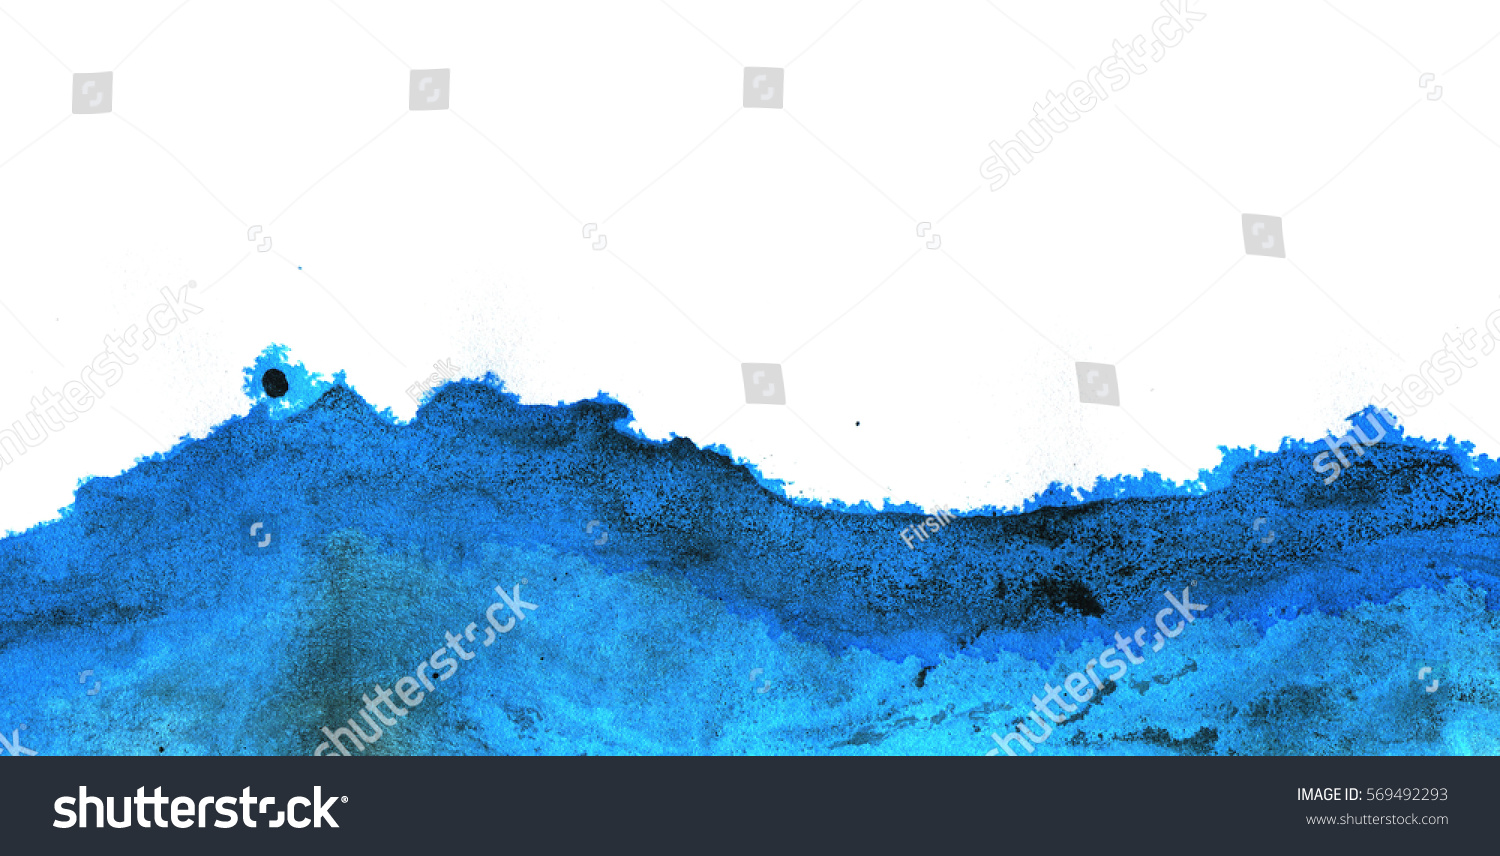 Fantastic Wallpaper Marble Landscape - stock-photo-abstract-ink-background-marble-style-black-paint-stroke-texture-on-white-paper-wallpaper-for-web-569492293  Best Photo Reference_723138.jpg